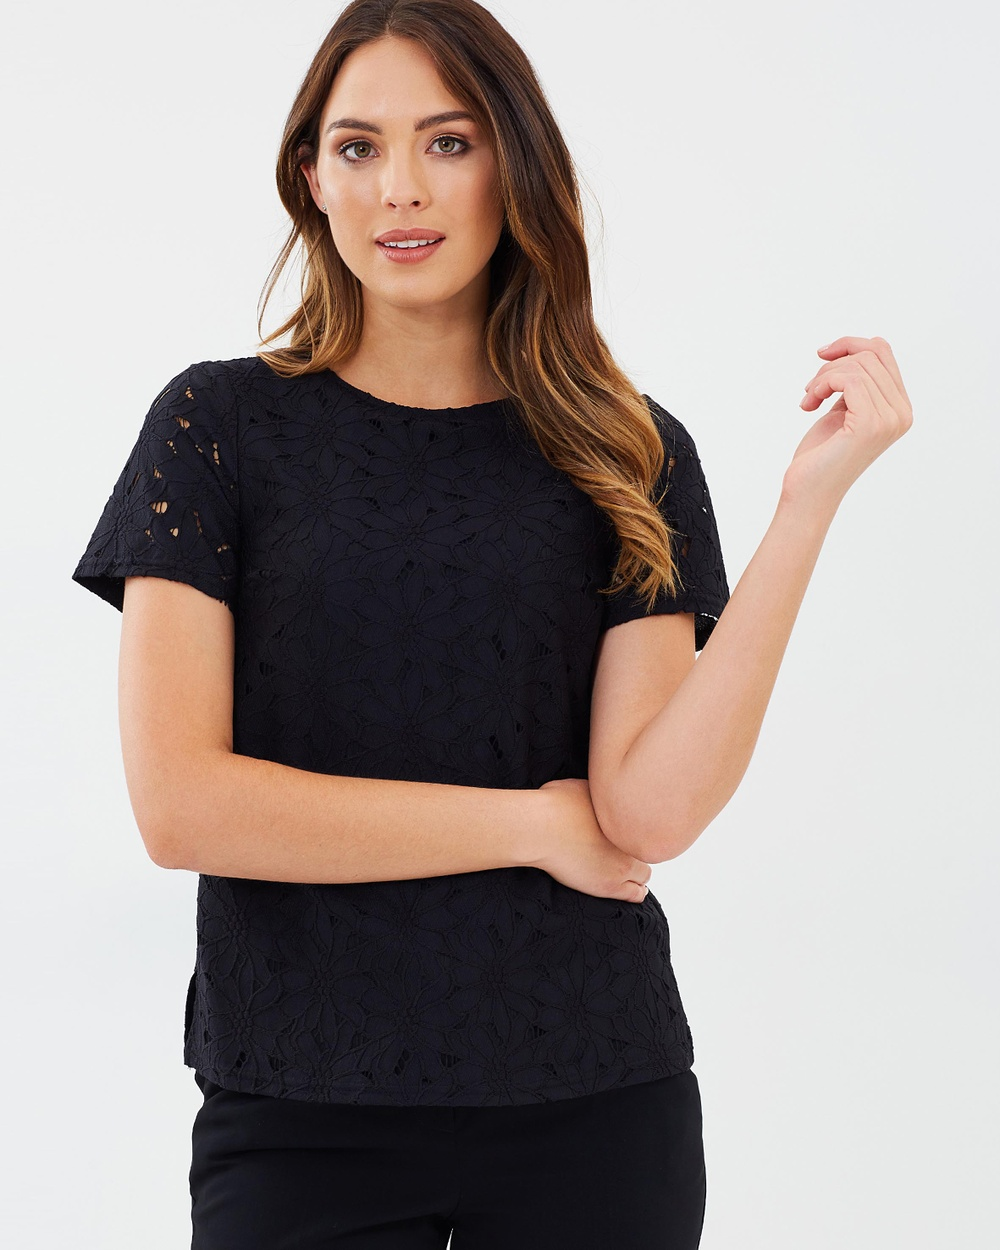 Dorothy Perkins Lace Tee Tops Black Lace Tee